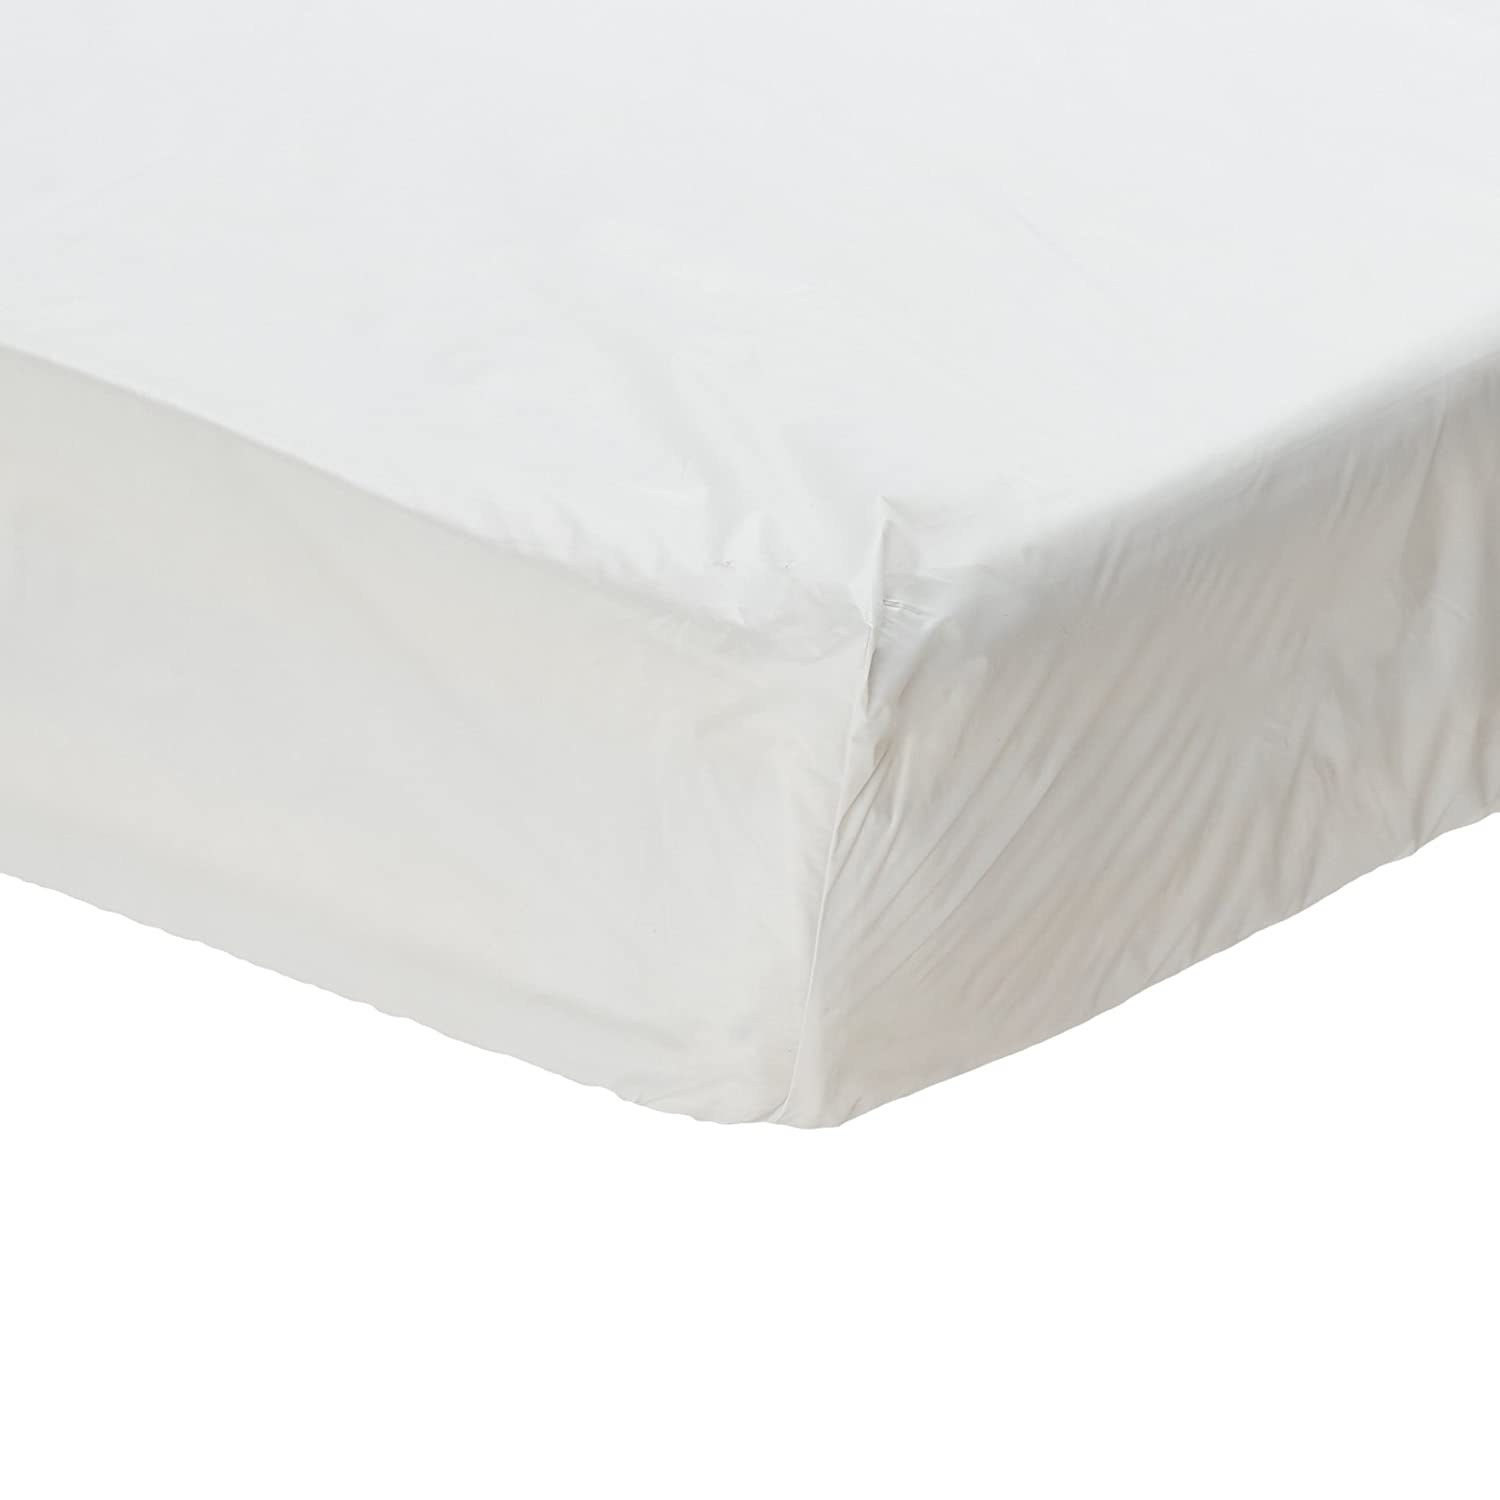 package mattress pe manufacture size naigu product queen china bag bags